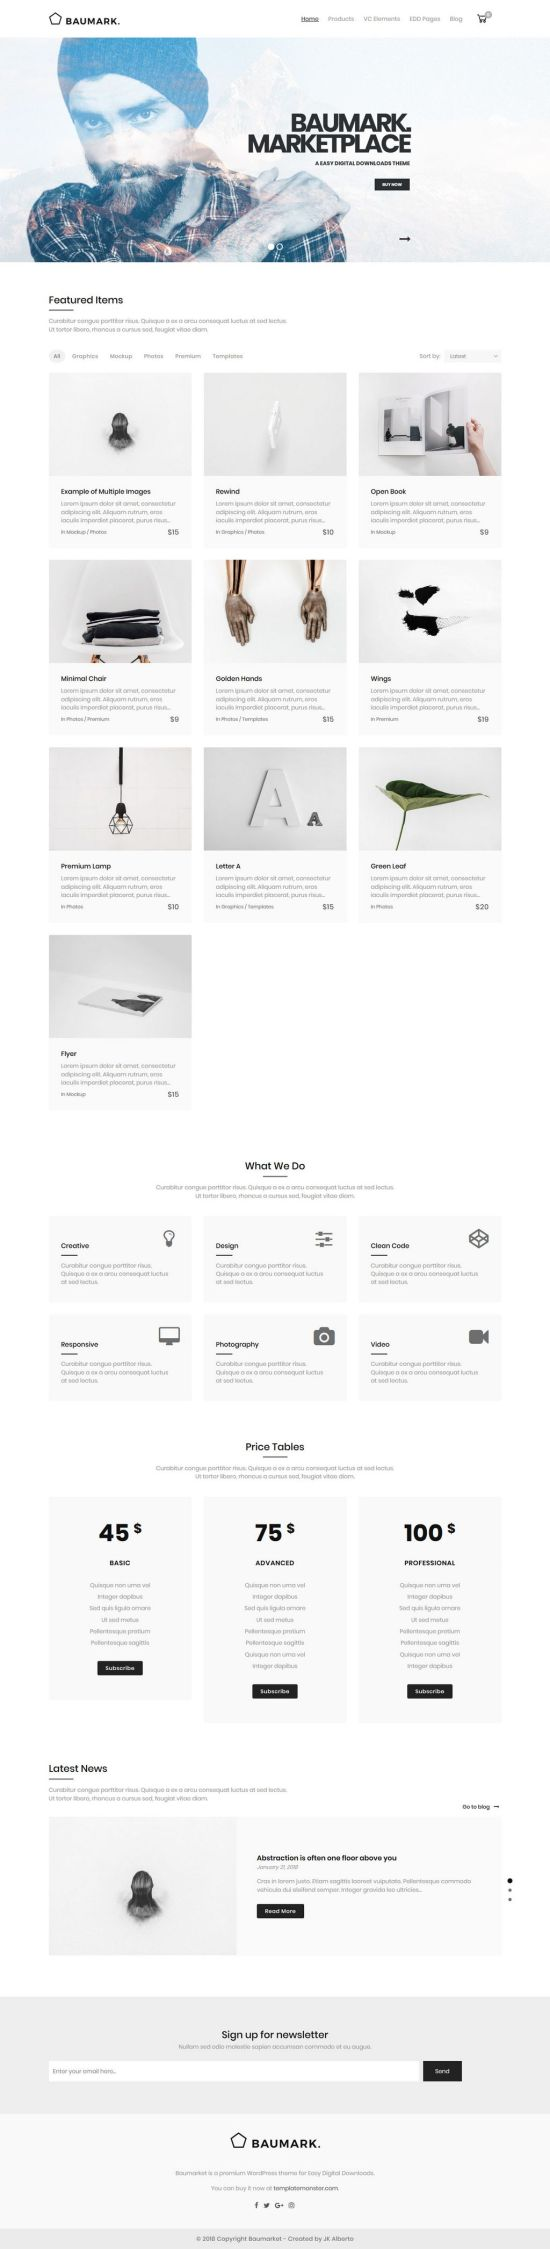 baumarket wordpress theme 01 - Baumarket WordPress Theme